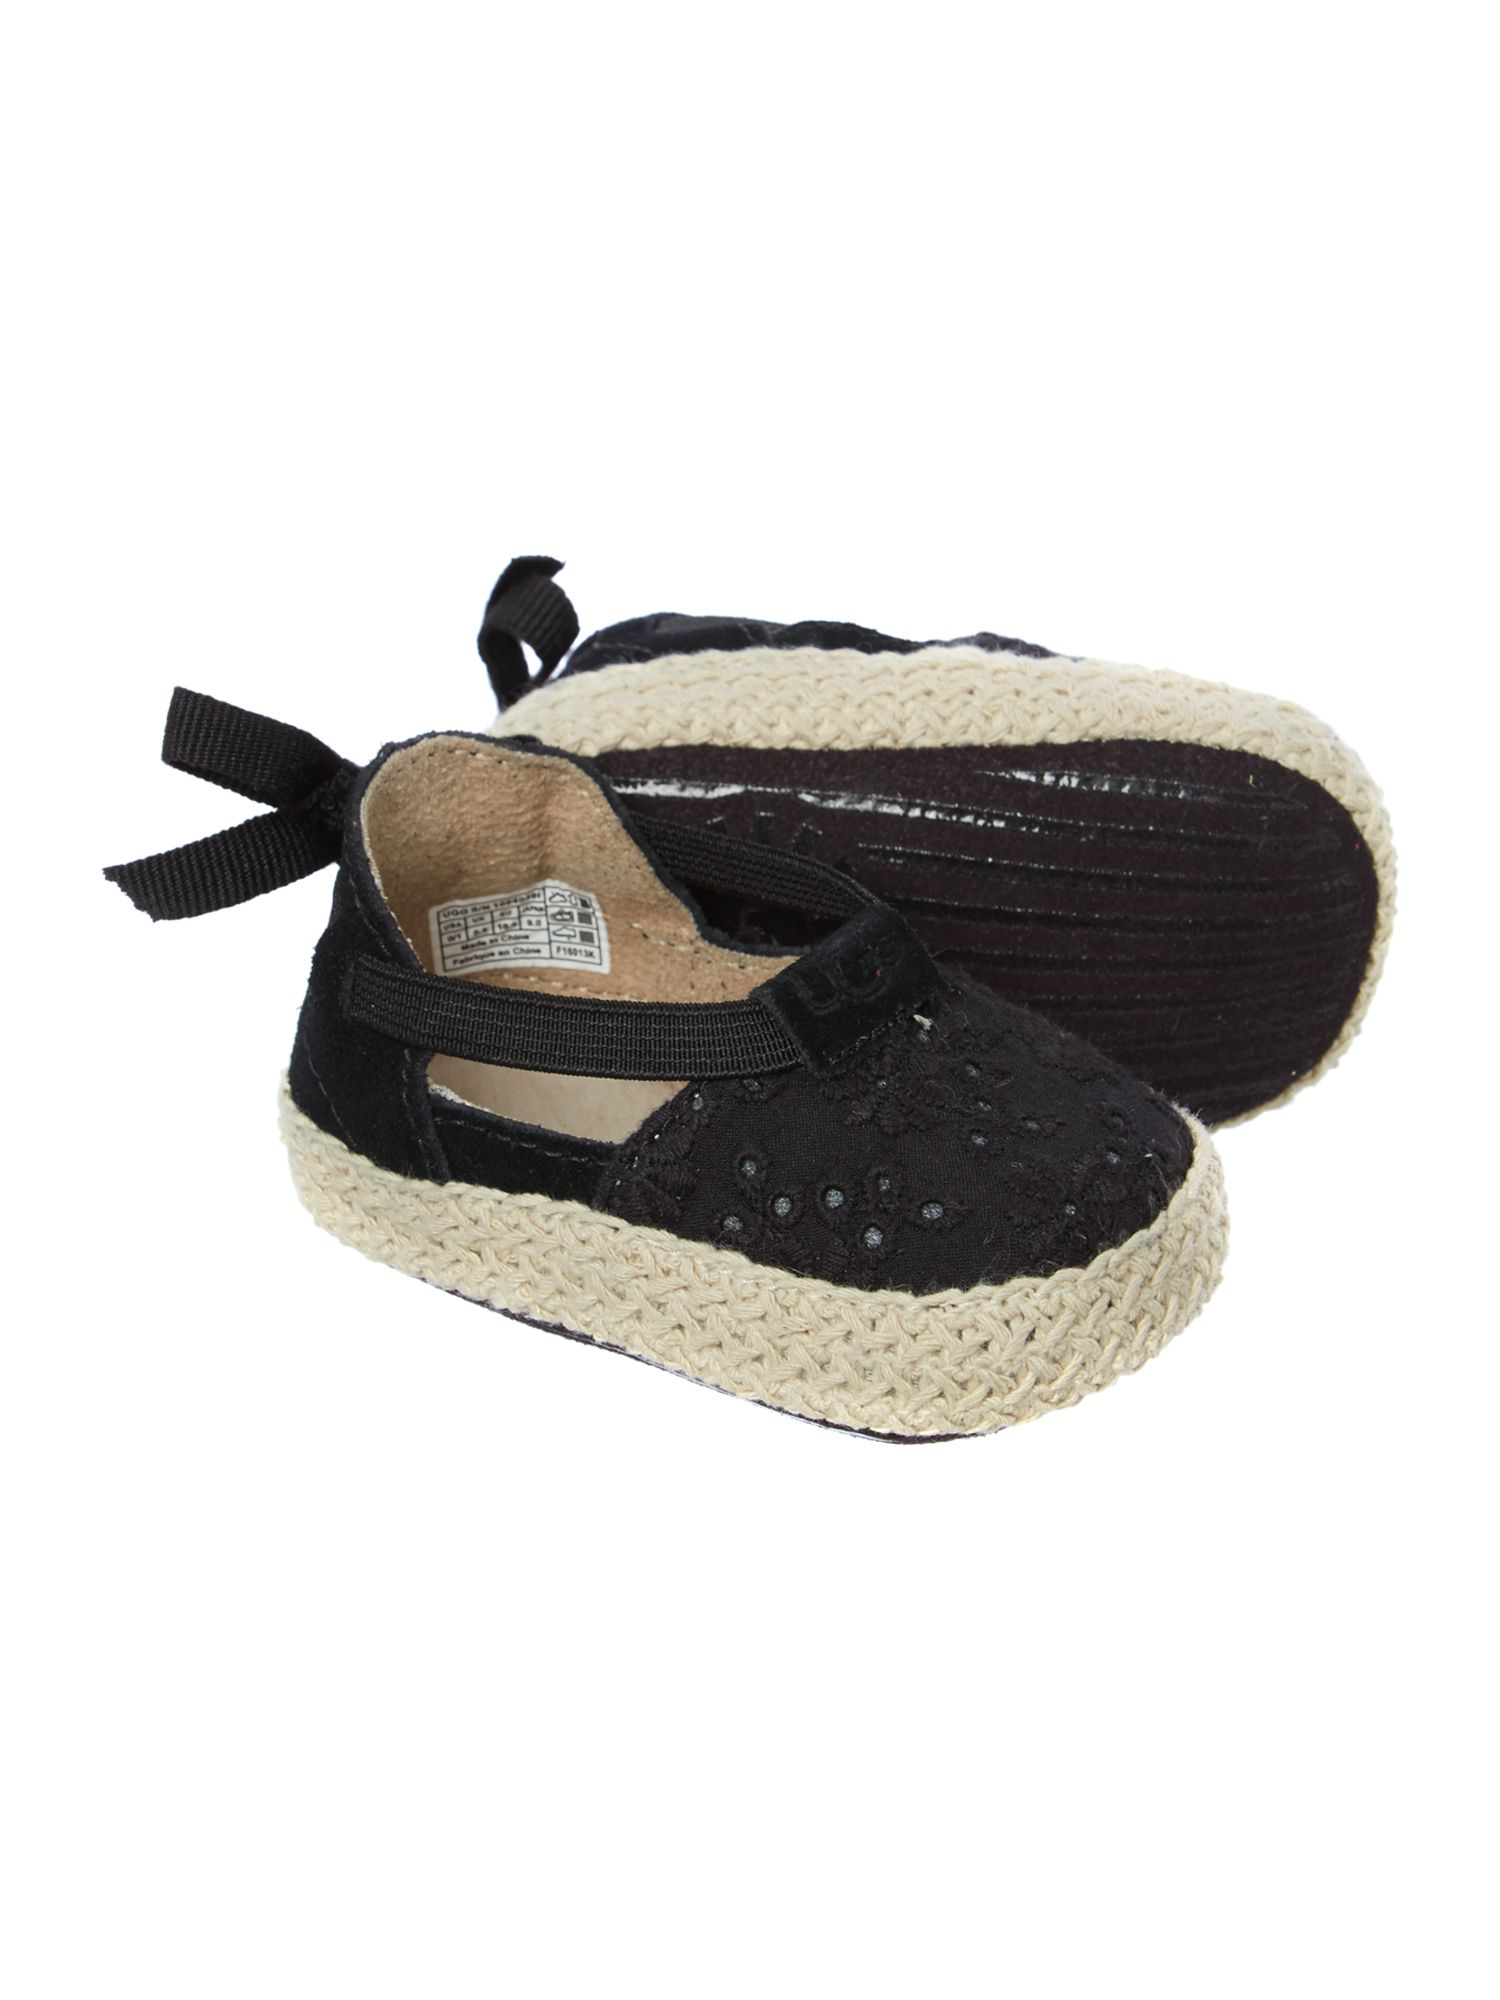 Baby embroidered espadrilles